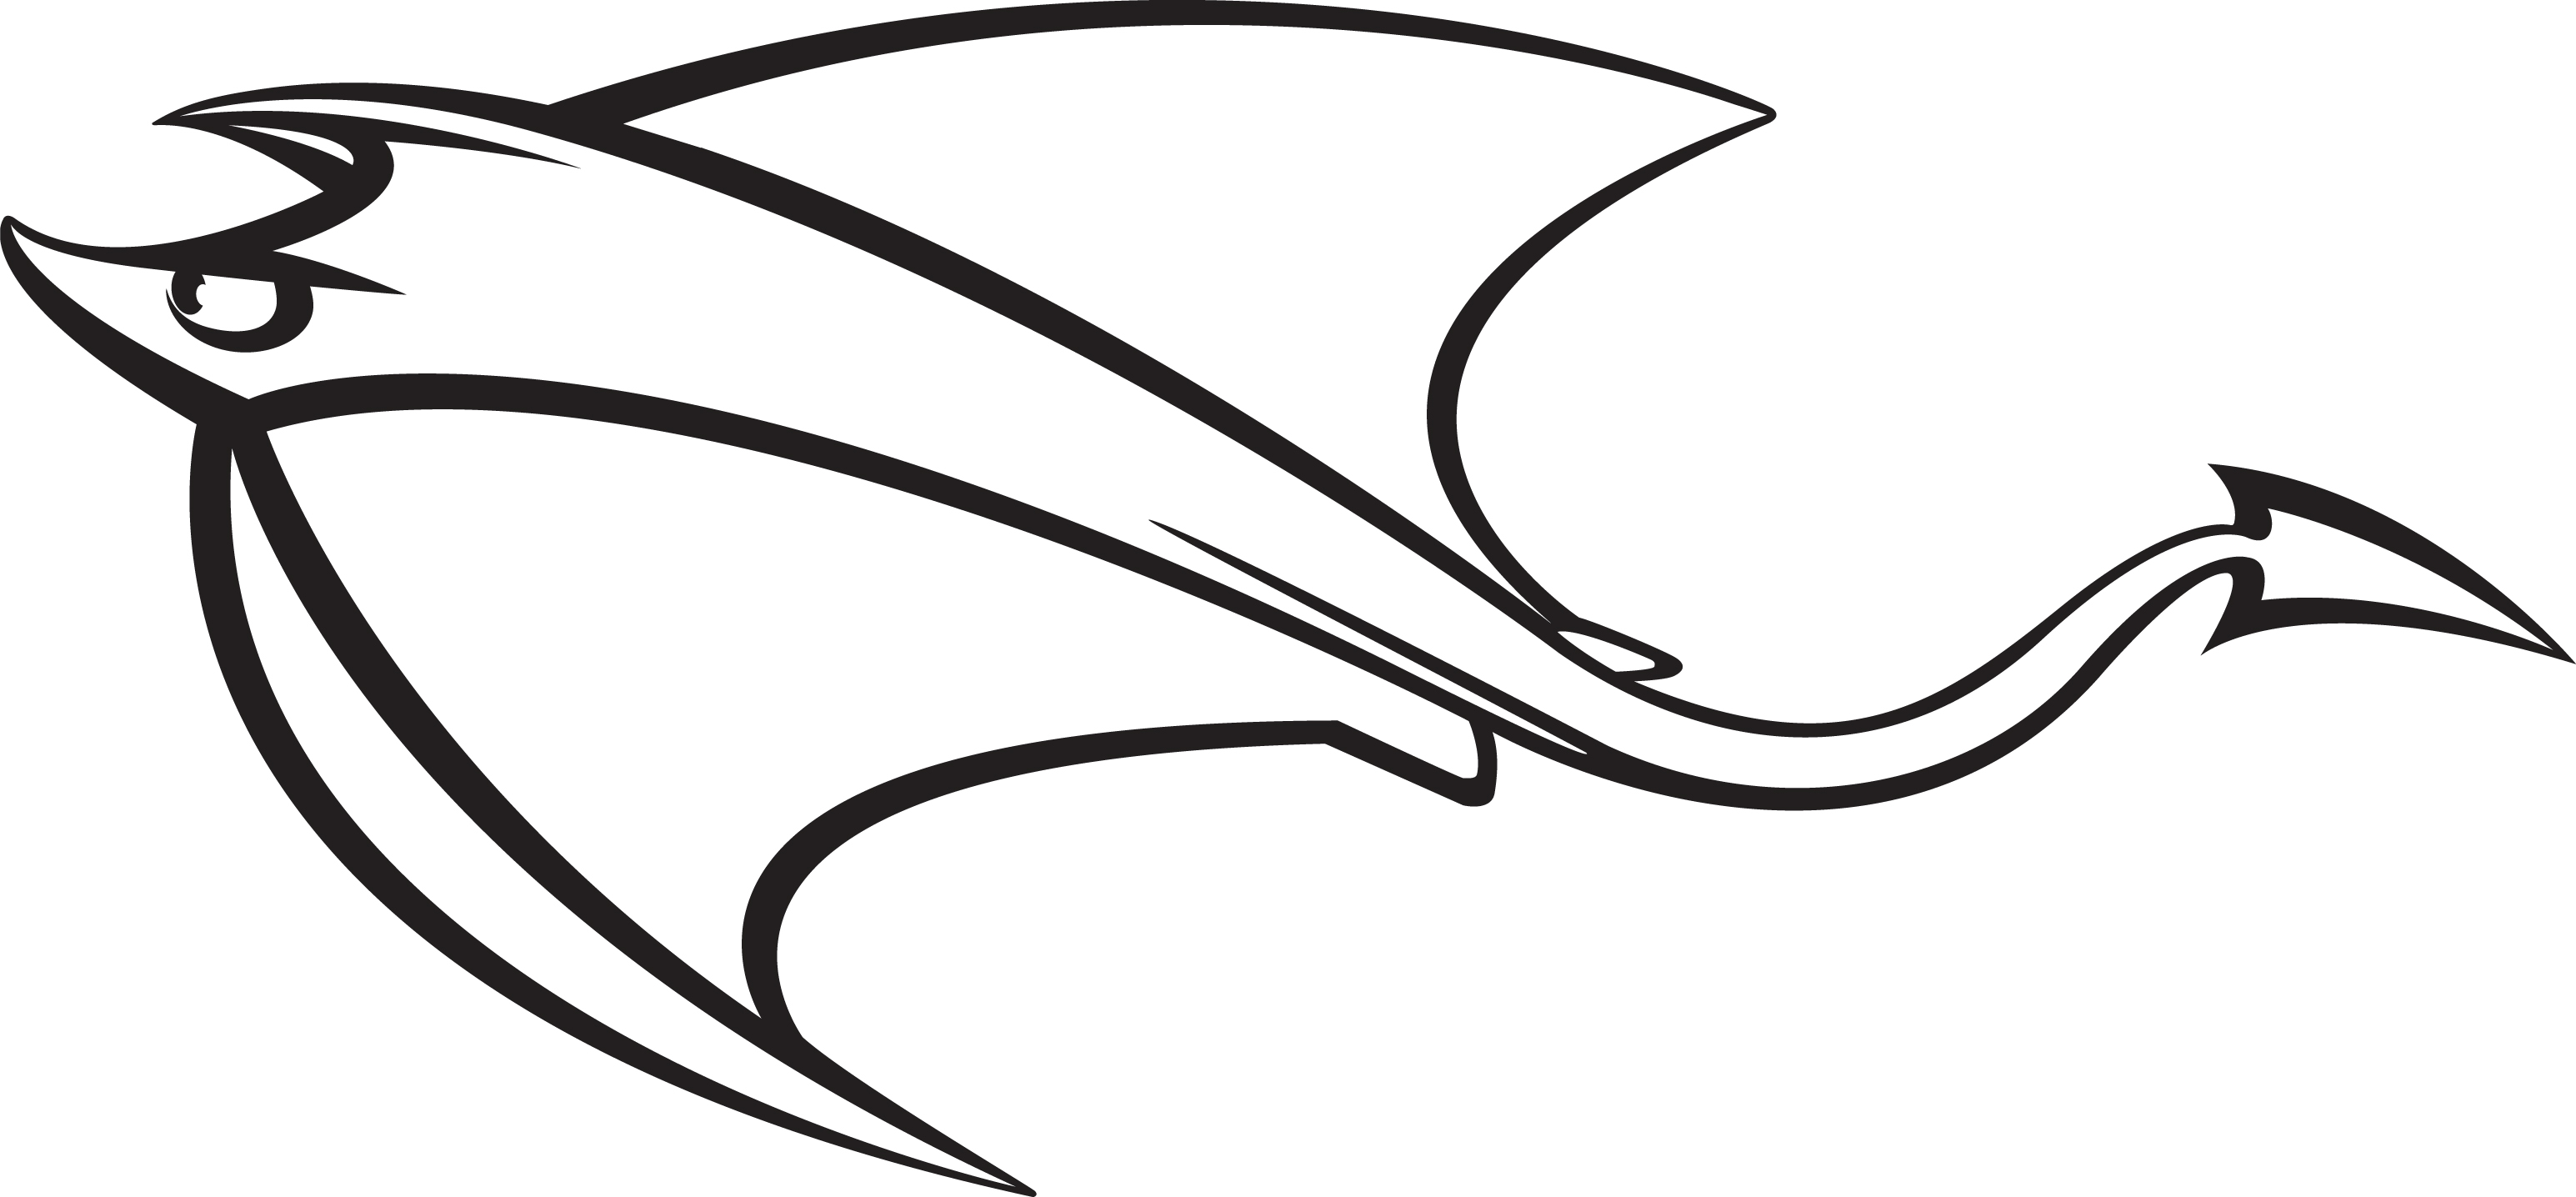 rays logo coloring pages - photo#32